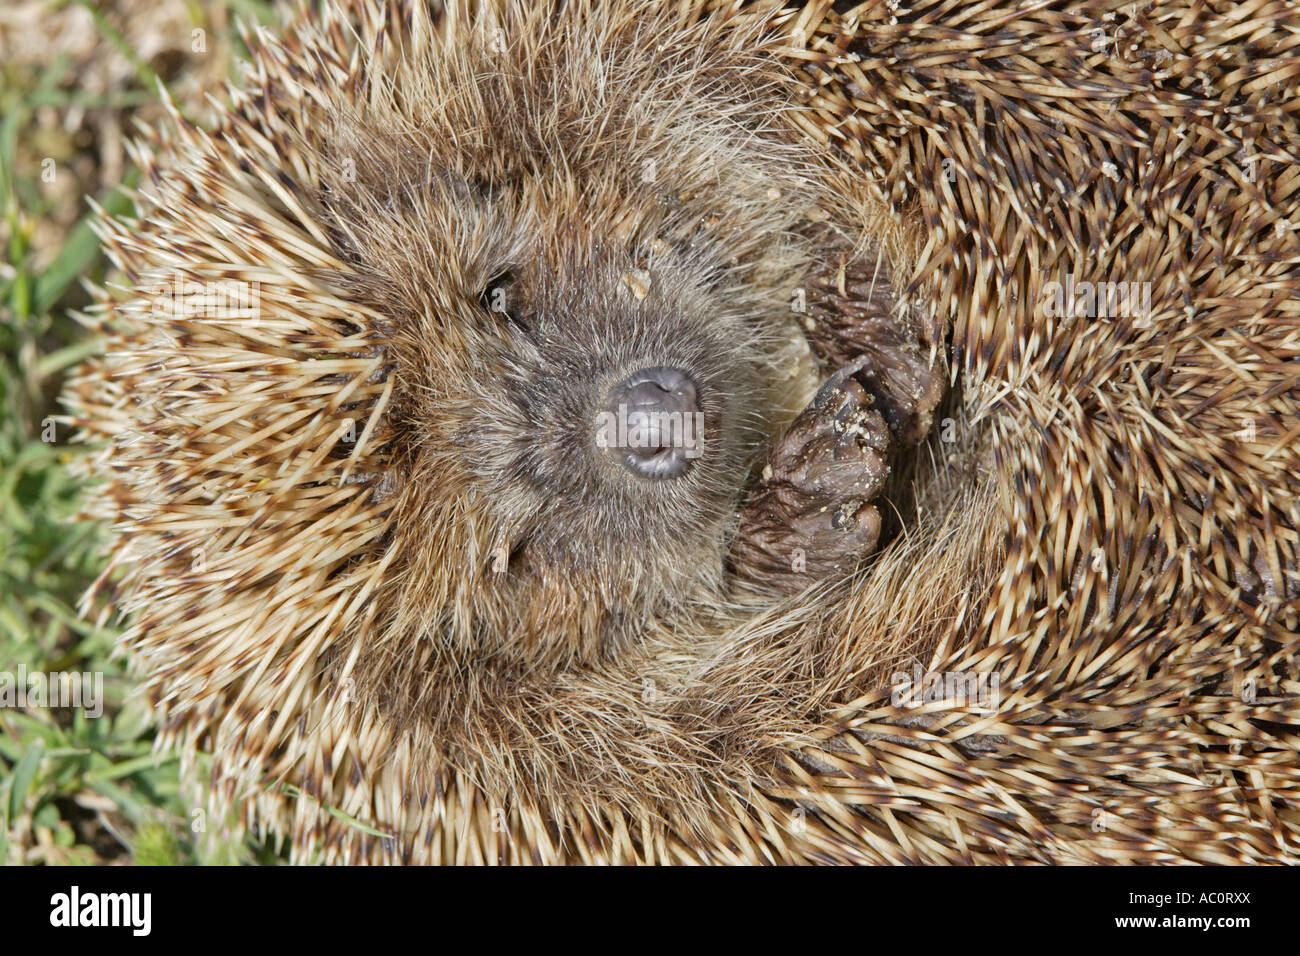 Eastern Hedgehog - Stock Image